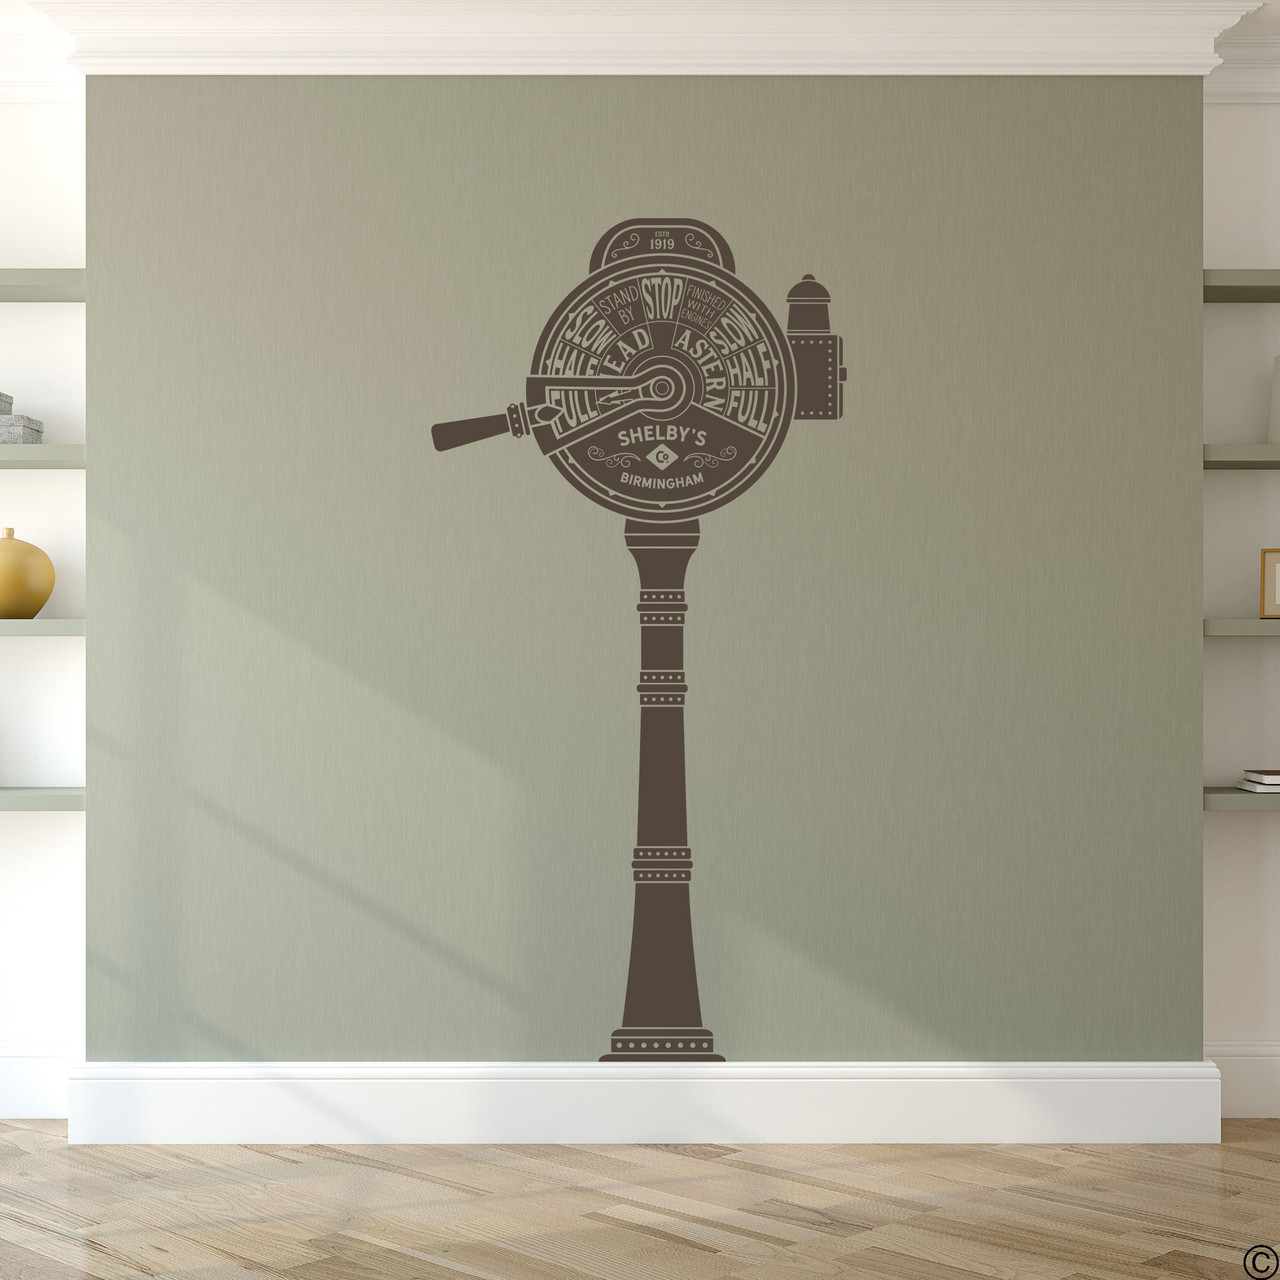 The ship telegraph wall decal shown here in brown vinyl color.